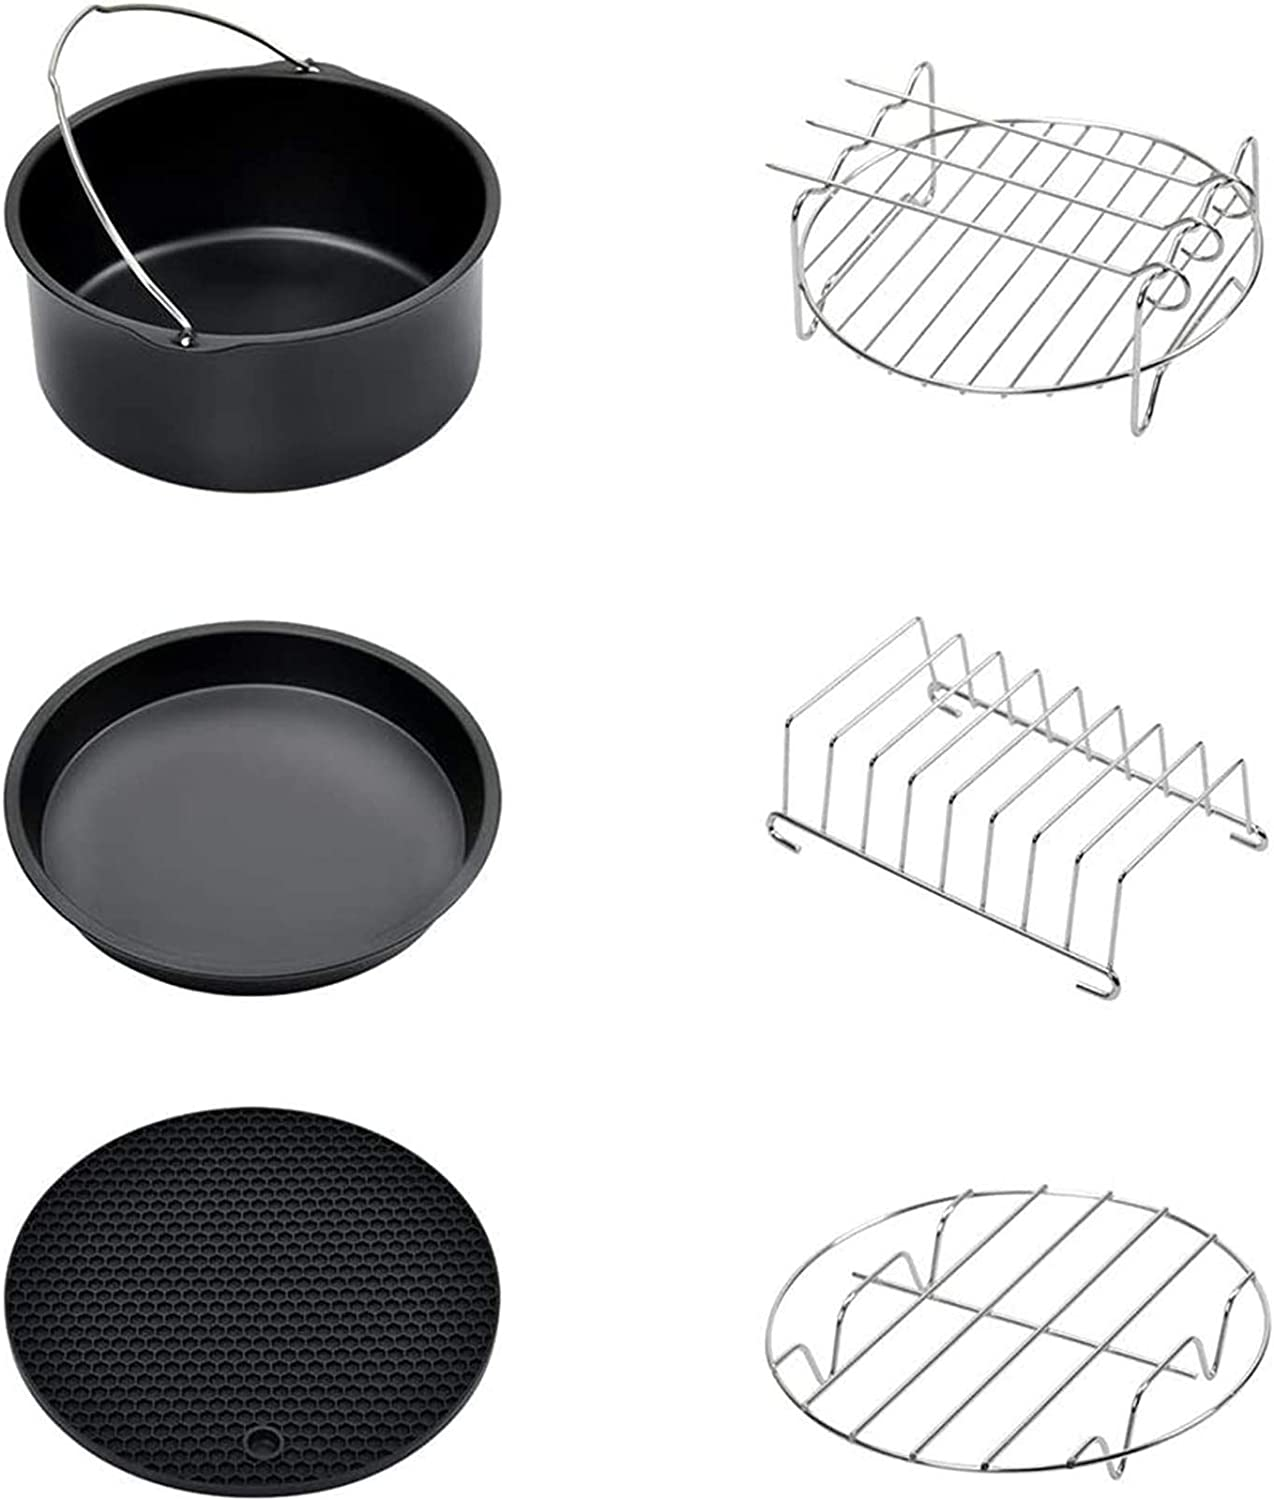 7 Inch Air Fryer Accessories, Phillips Air Fryer Accessories and Gowise Air Fryer Accessories Fit all 3.2QT - 5.8QT, Set of 6 (Black)